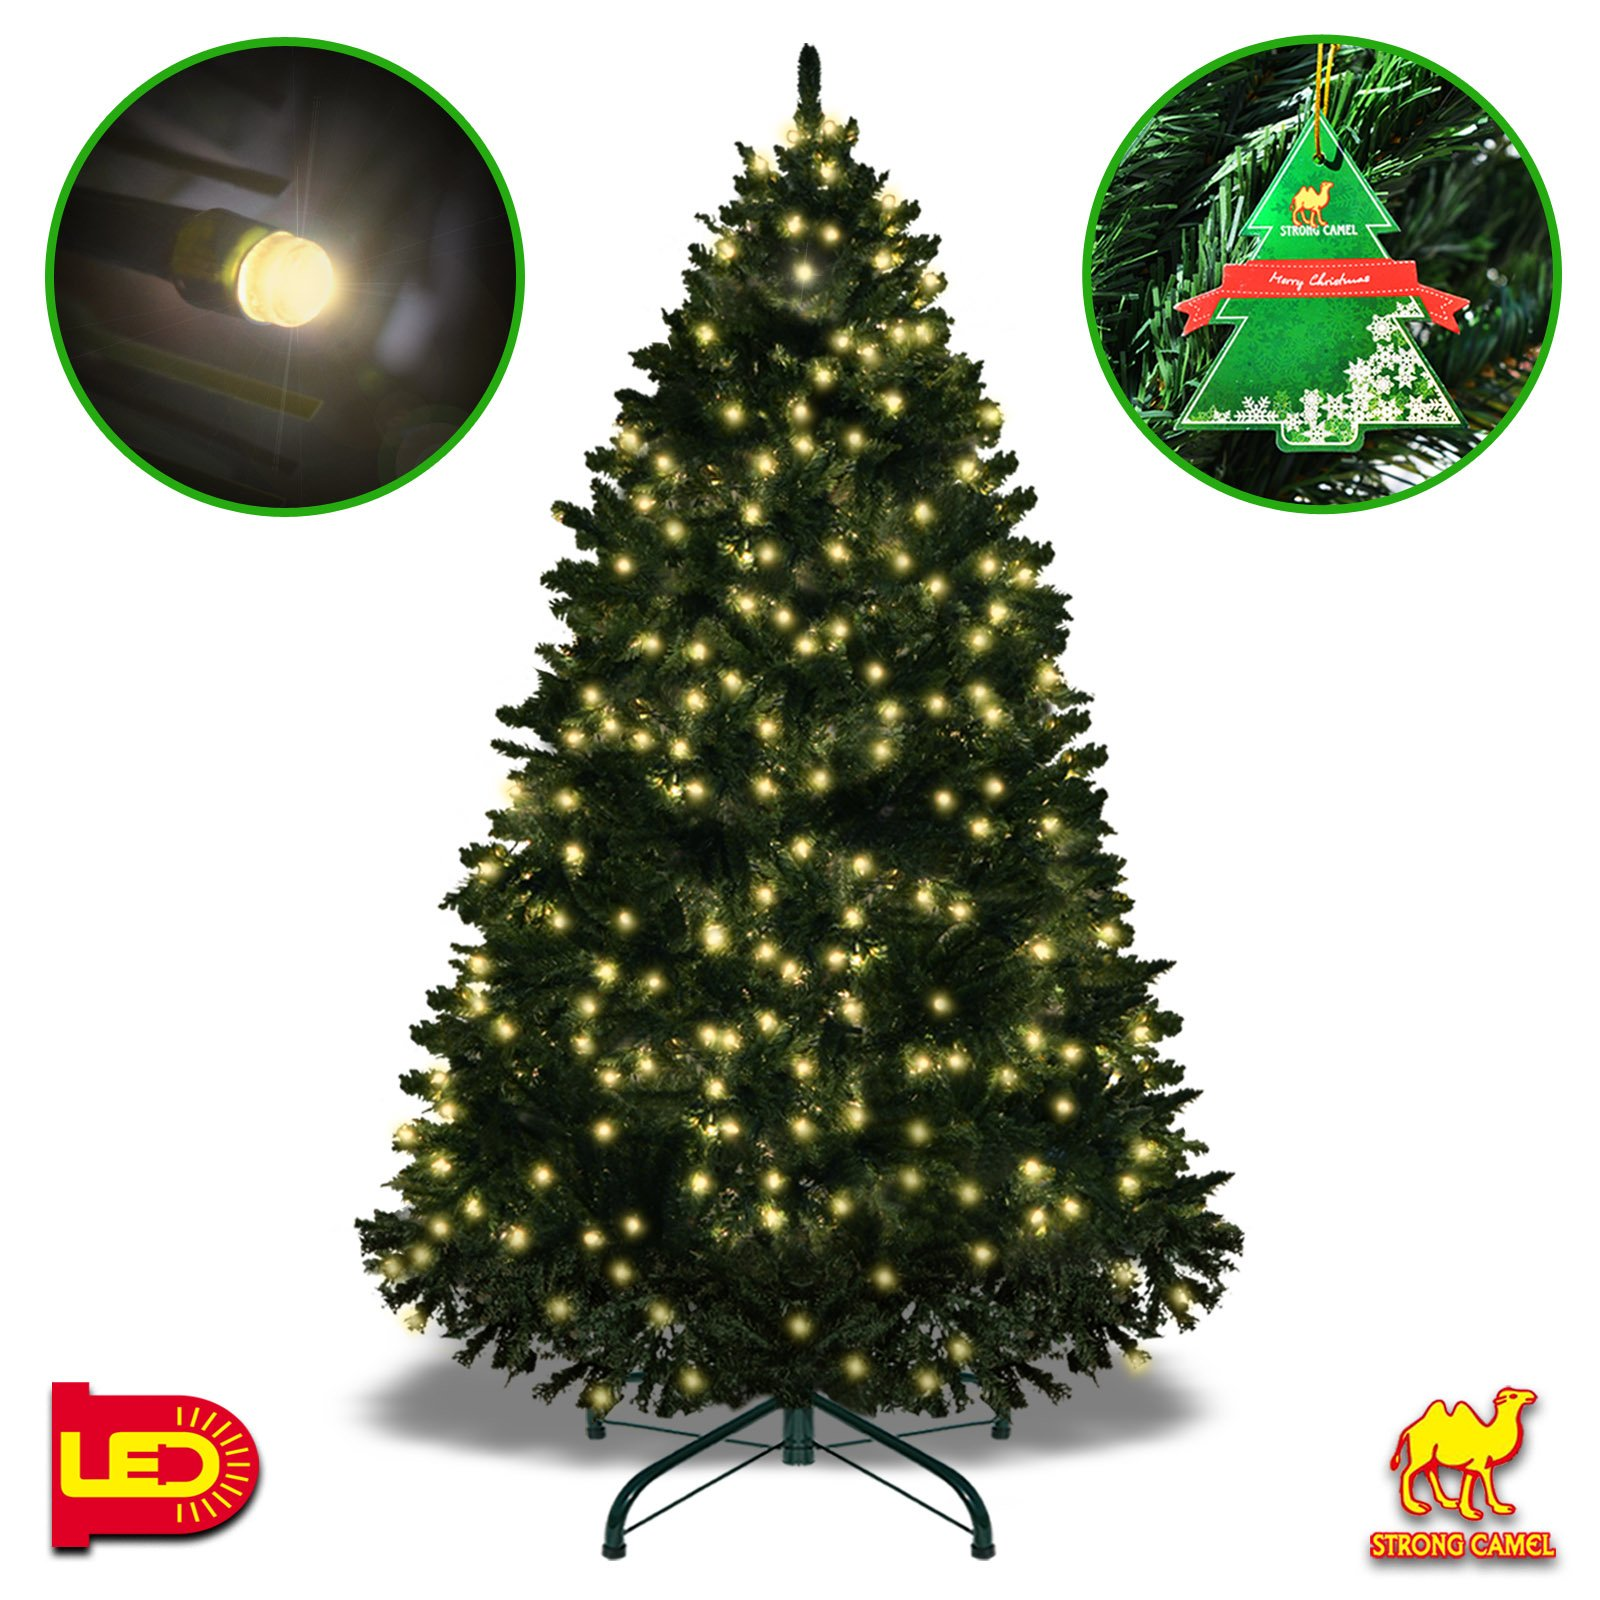 Strong Camel 6.5' Tall Artificial Fir Christmas Tree Full Spruce With Metal Base (6.5' with 650 LED lights and 1880 tips)